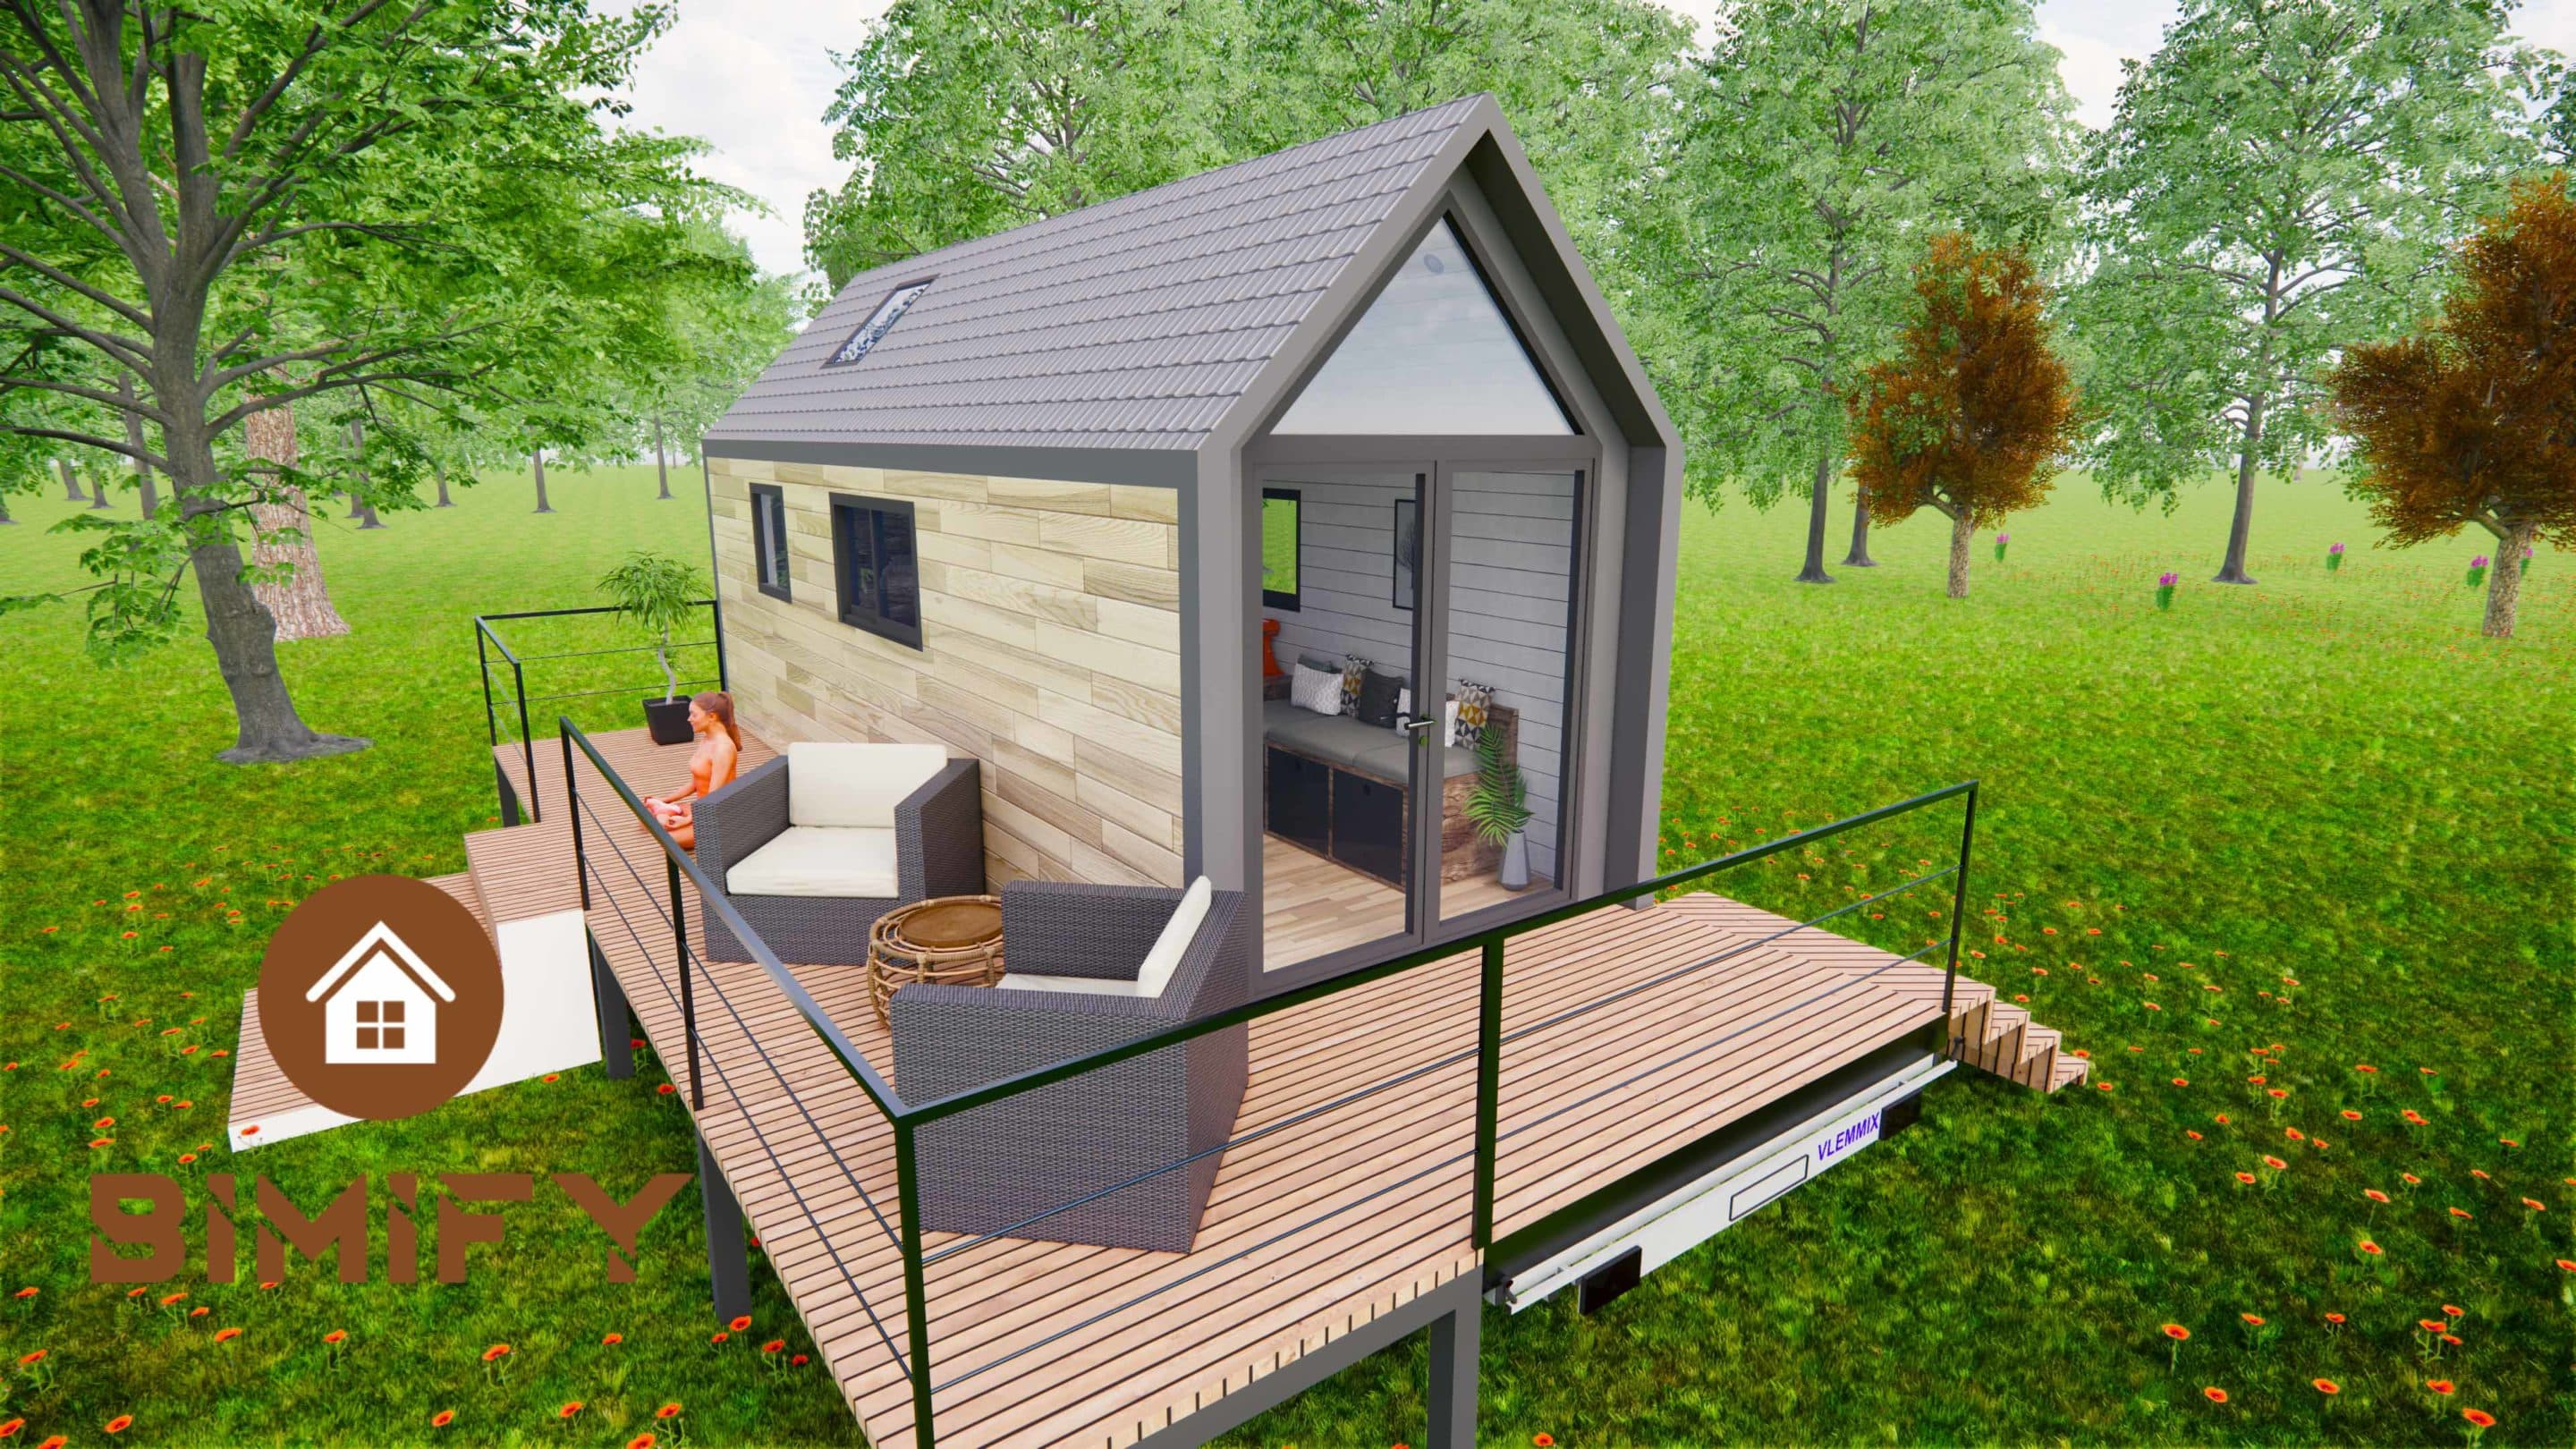 Tiny Chalet with large opening and integrated terrace on trailer